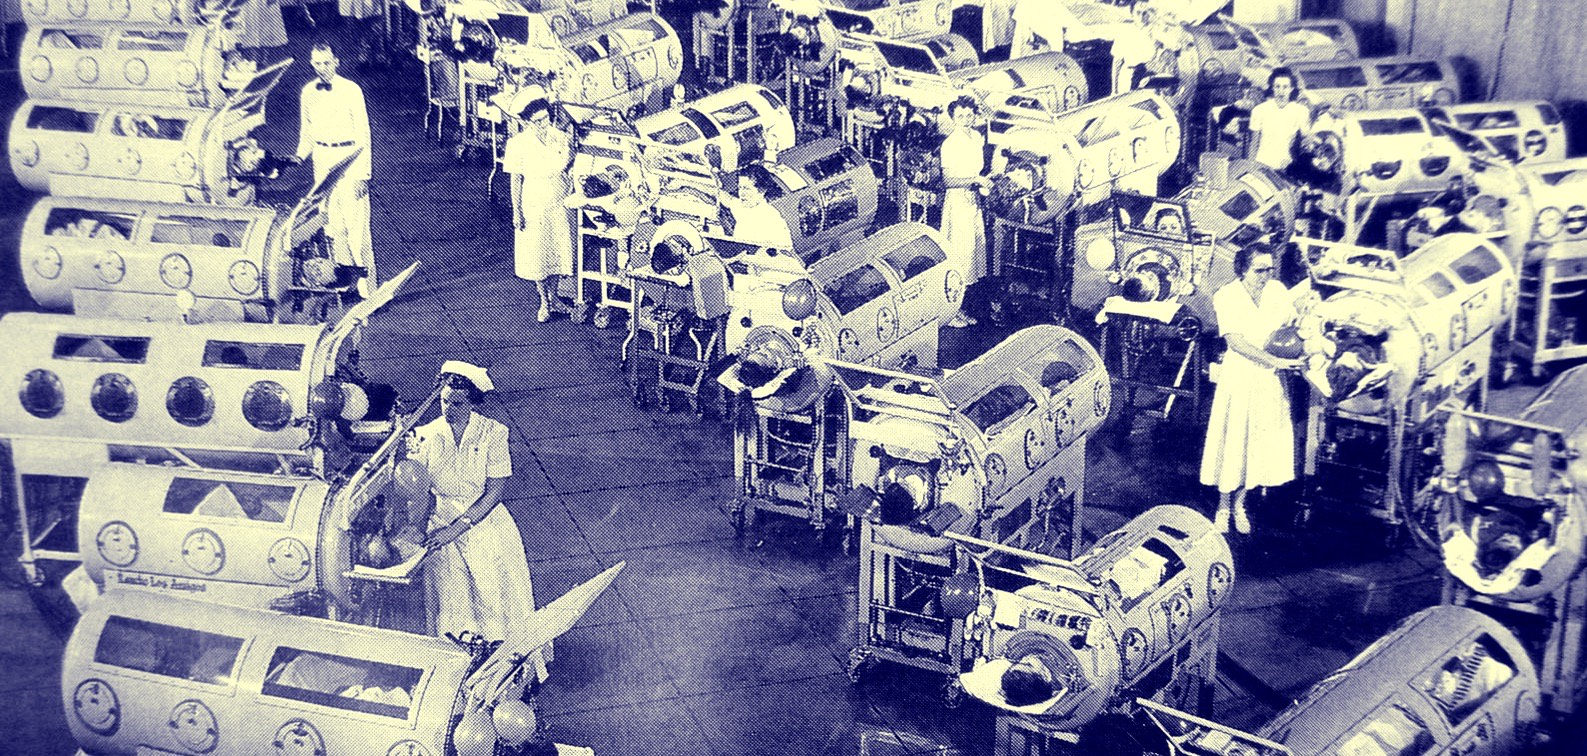 Trapped Inside a Tube: The Iron Lung Story